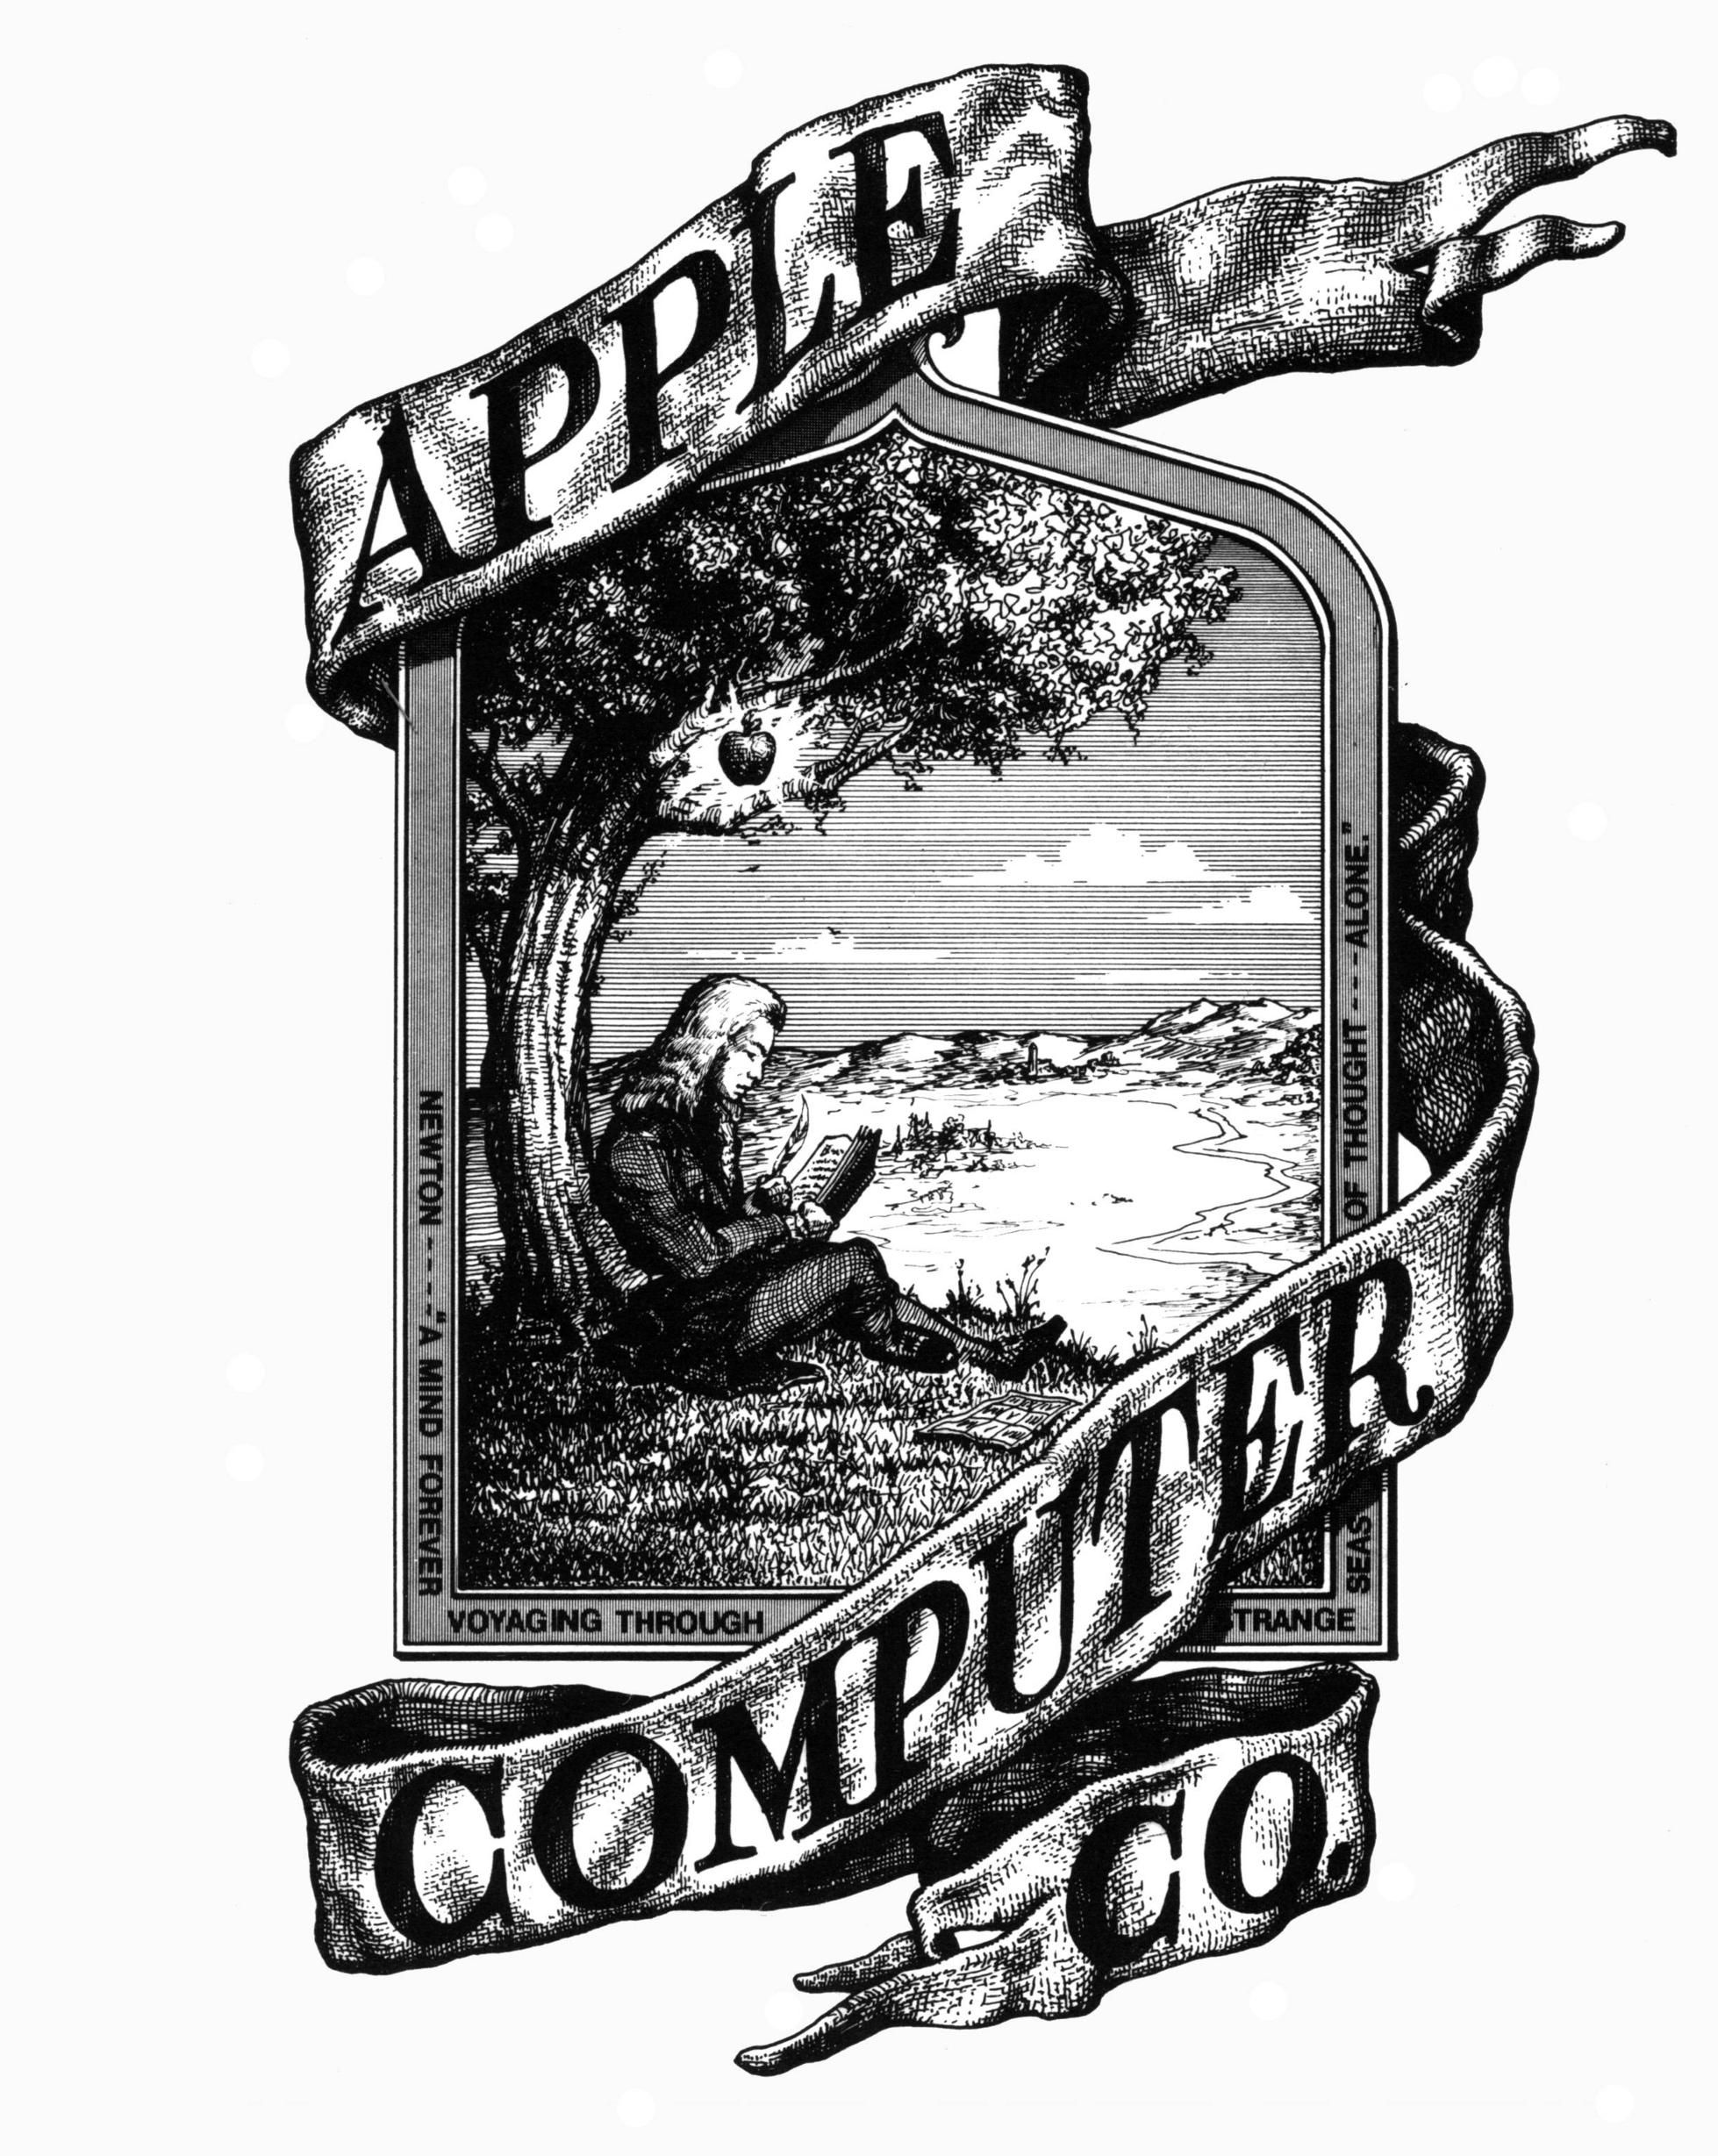 Pin by Maverick Zloch on CoolTech Apple logo, Graphic